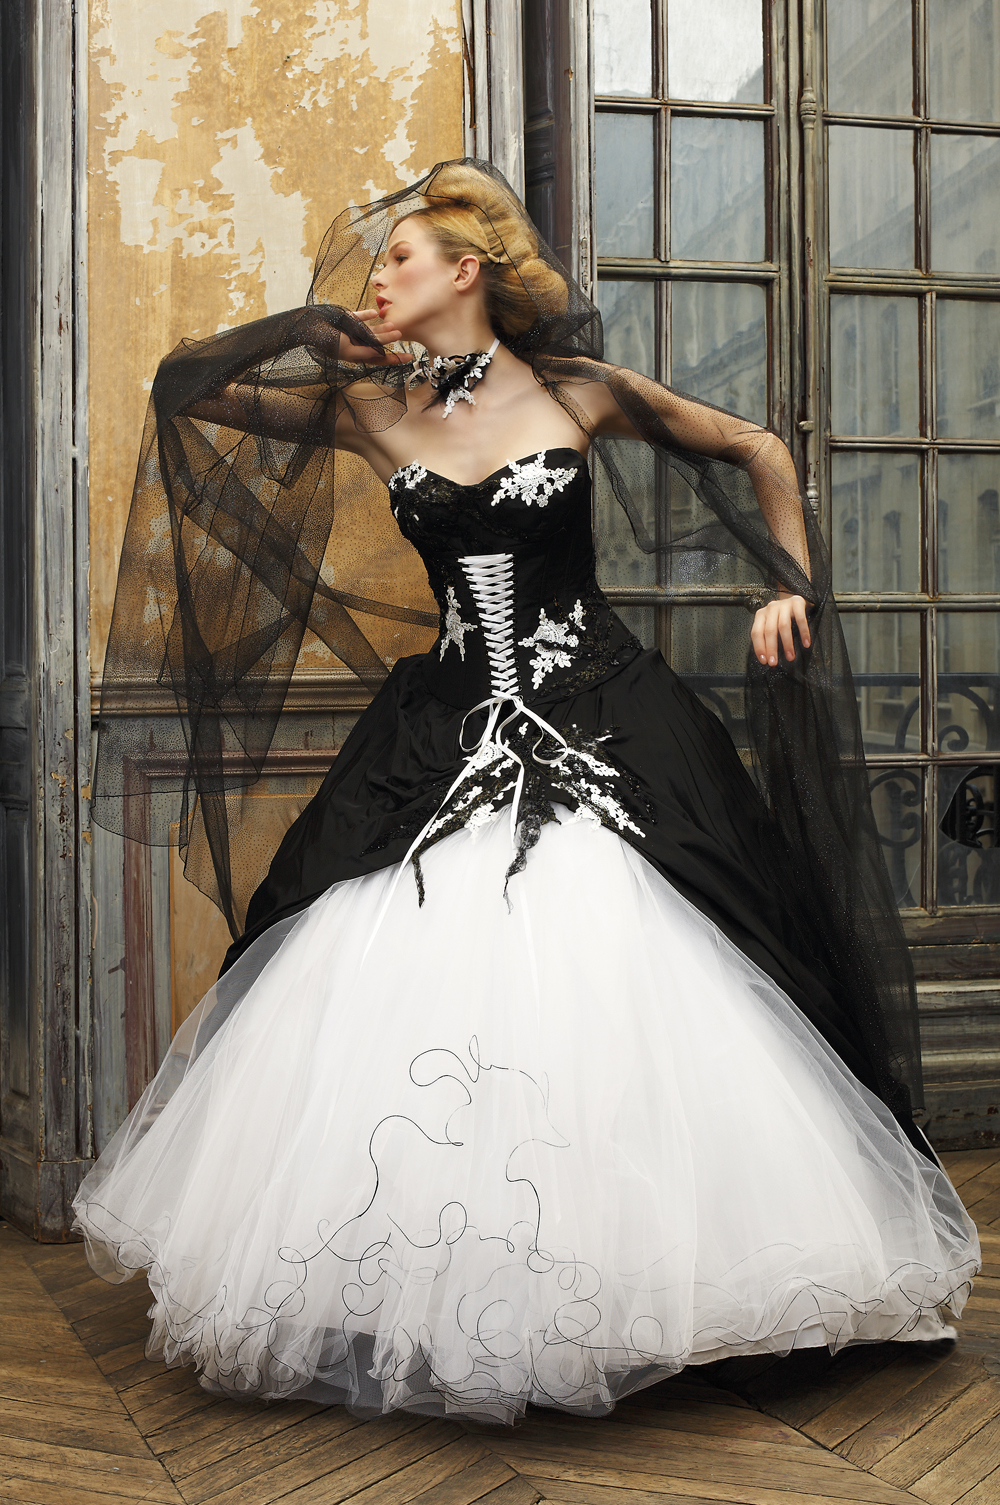 30 Ideas Of Beautiful Black And White Wedding Dresses The Best